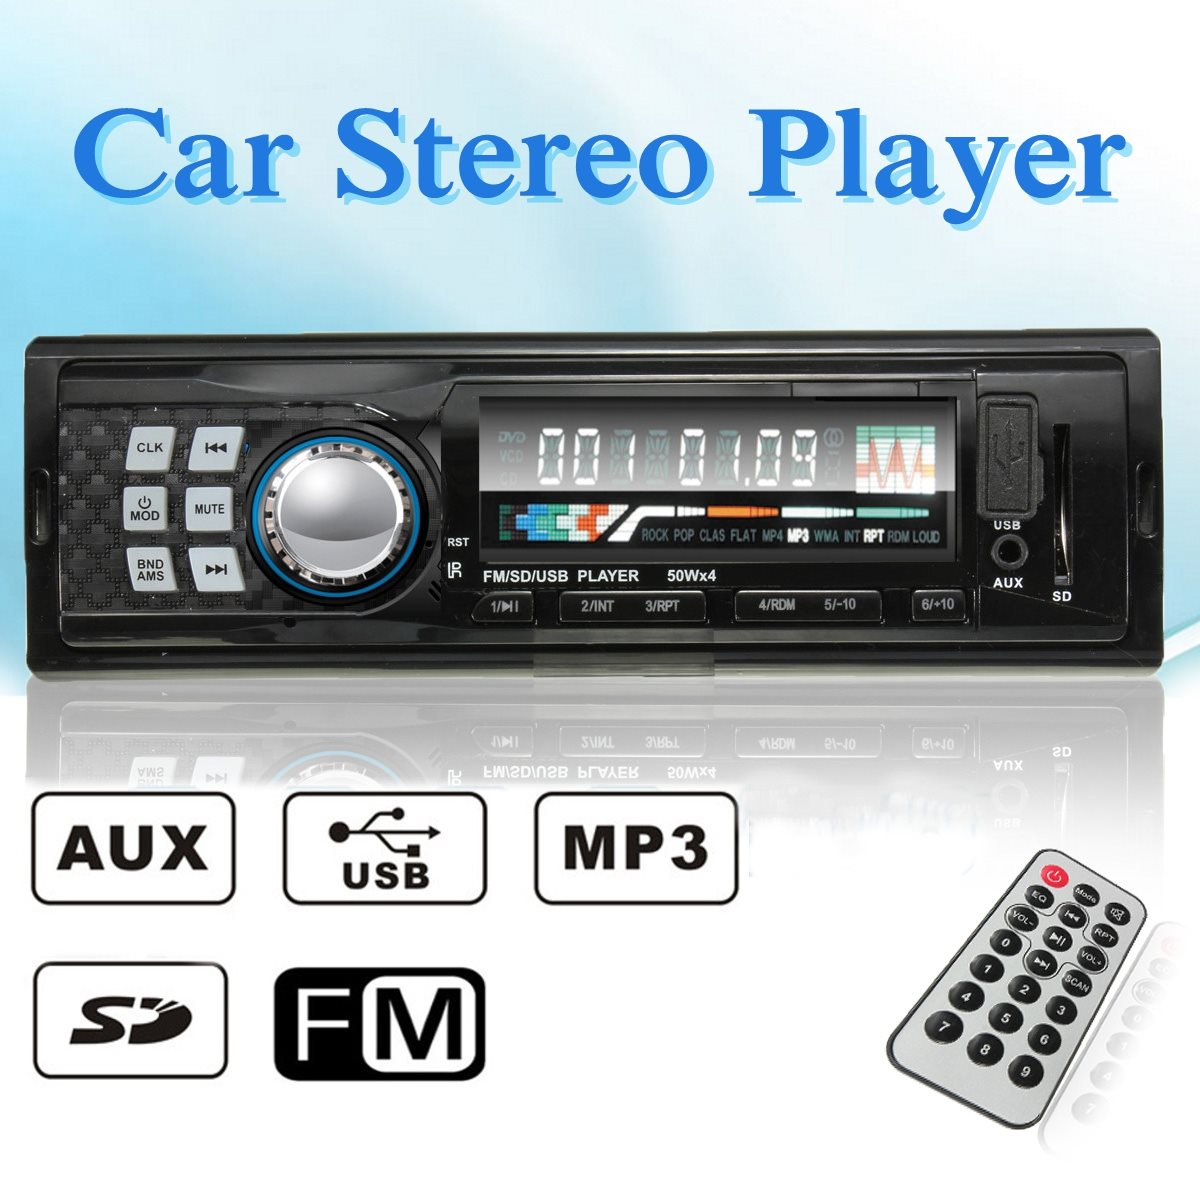 12V CAR 6242 RADIO MP3 MUSIC PLAYER STEREO IN-DASH FM USB SD AUX INPUT RECEIVER(China (Mainland))